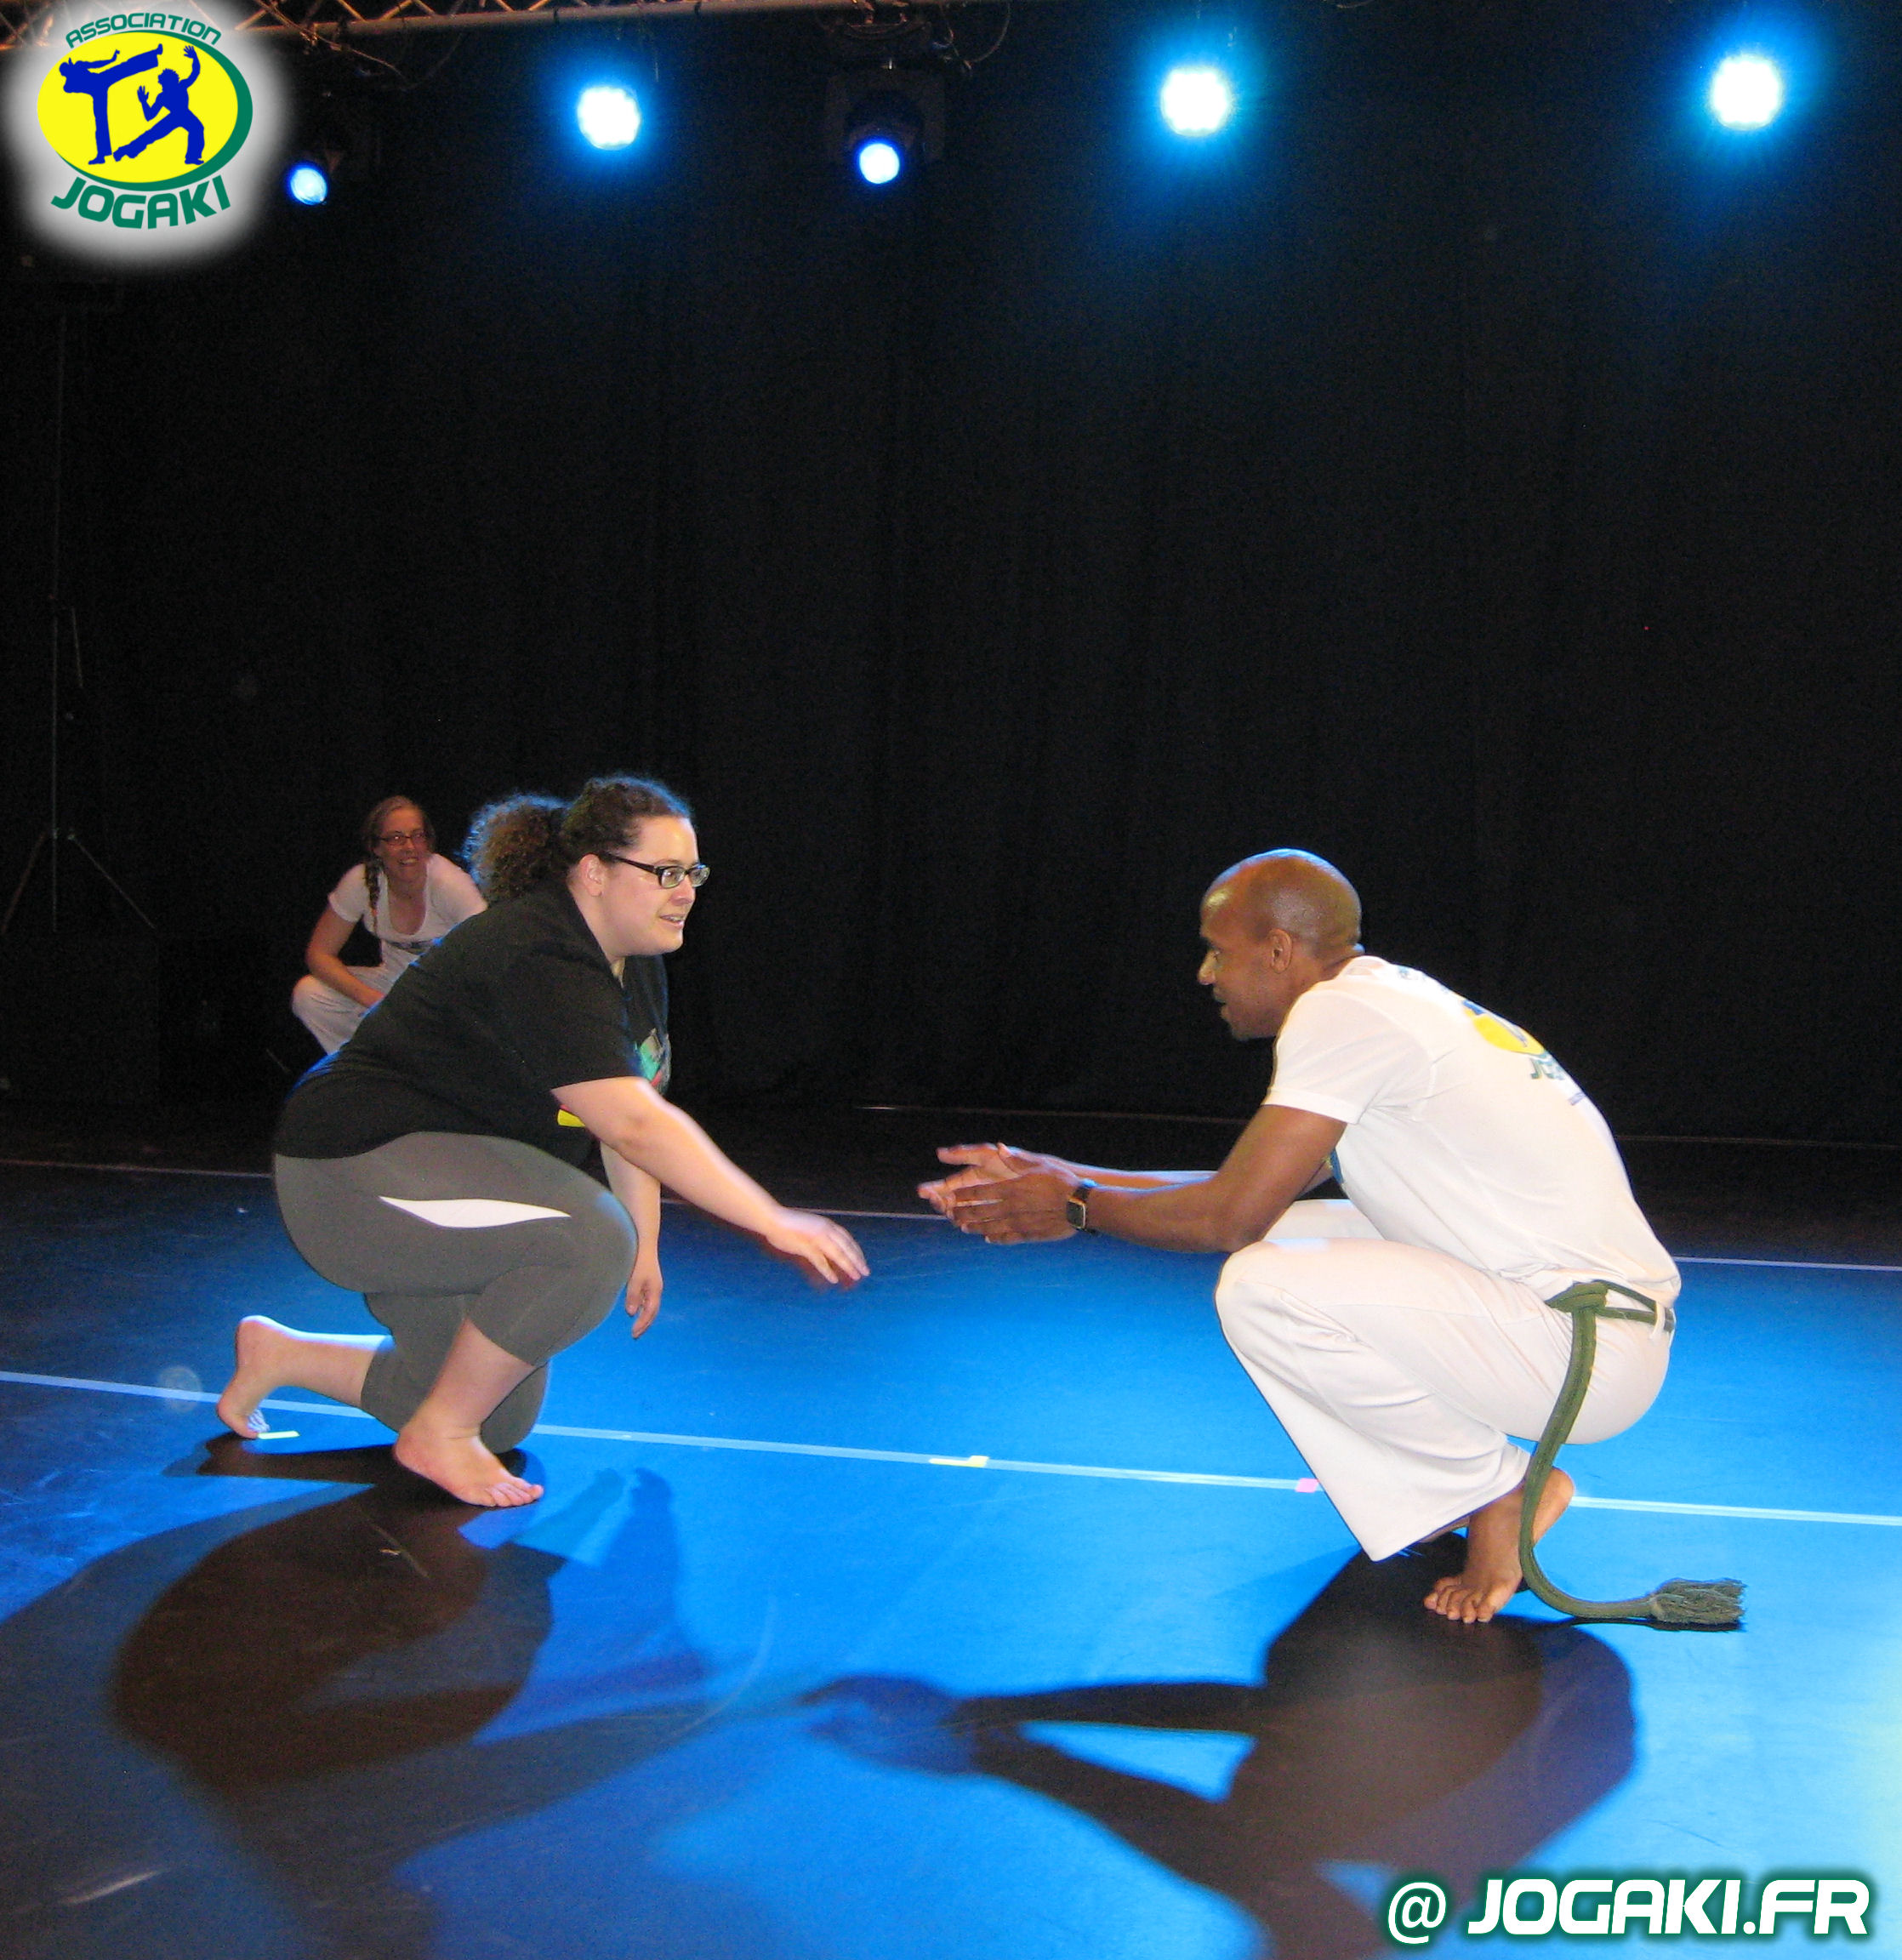 spectacle-capoeira-paris-danseurs-evenement-happening-bresil-282